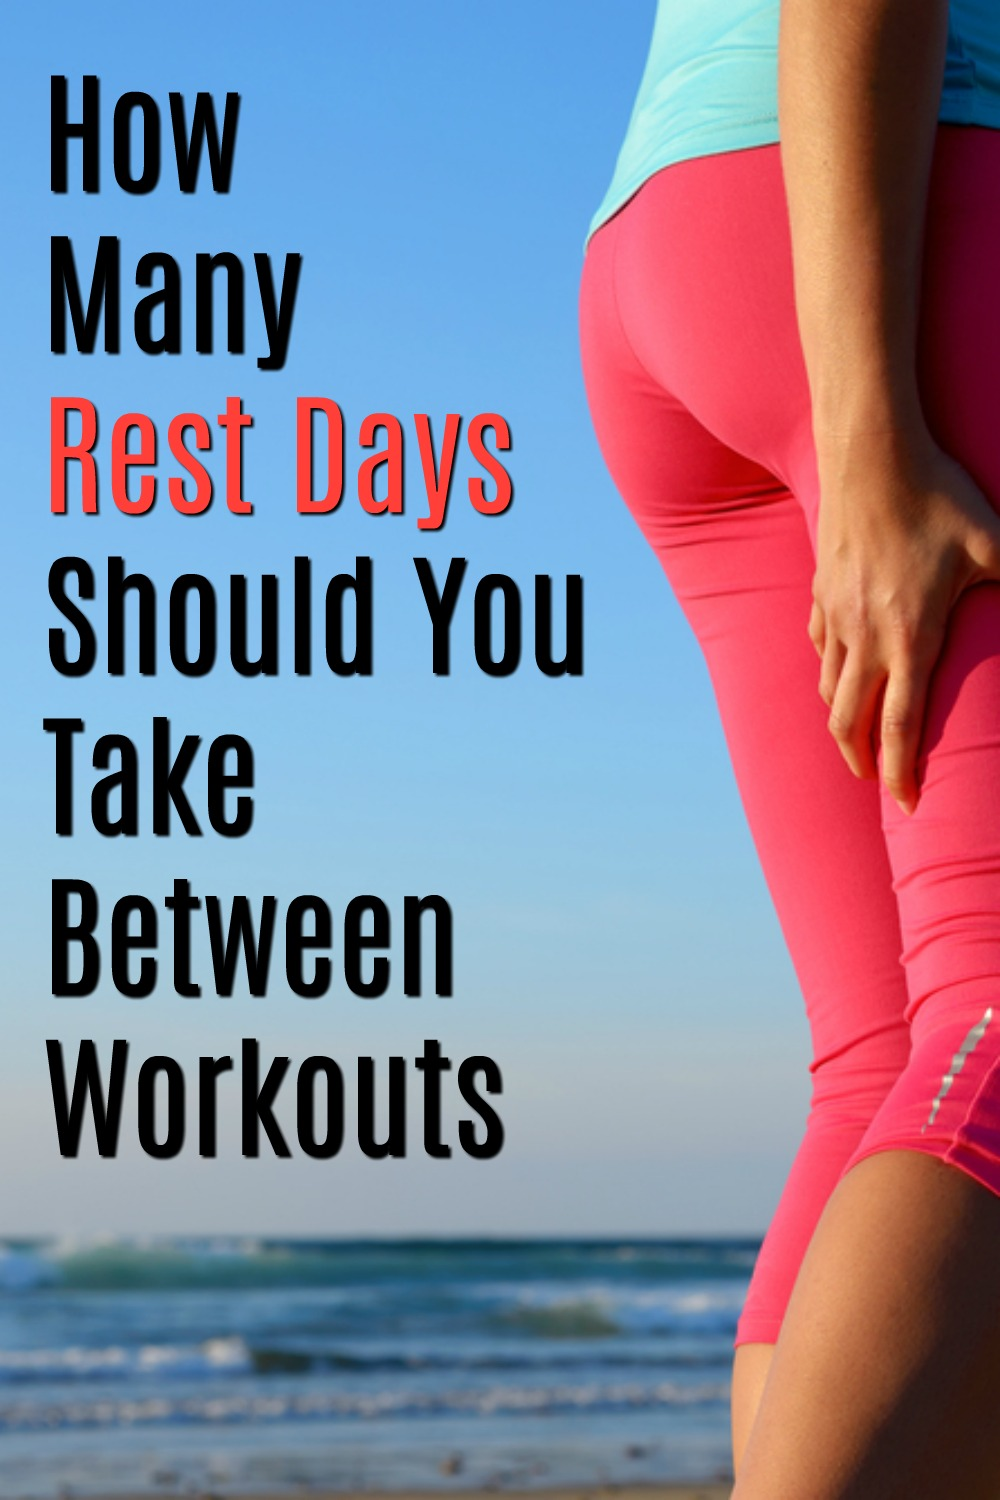 how many rest days do you need between workouts